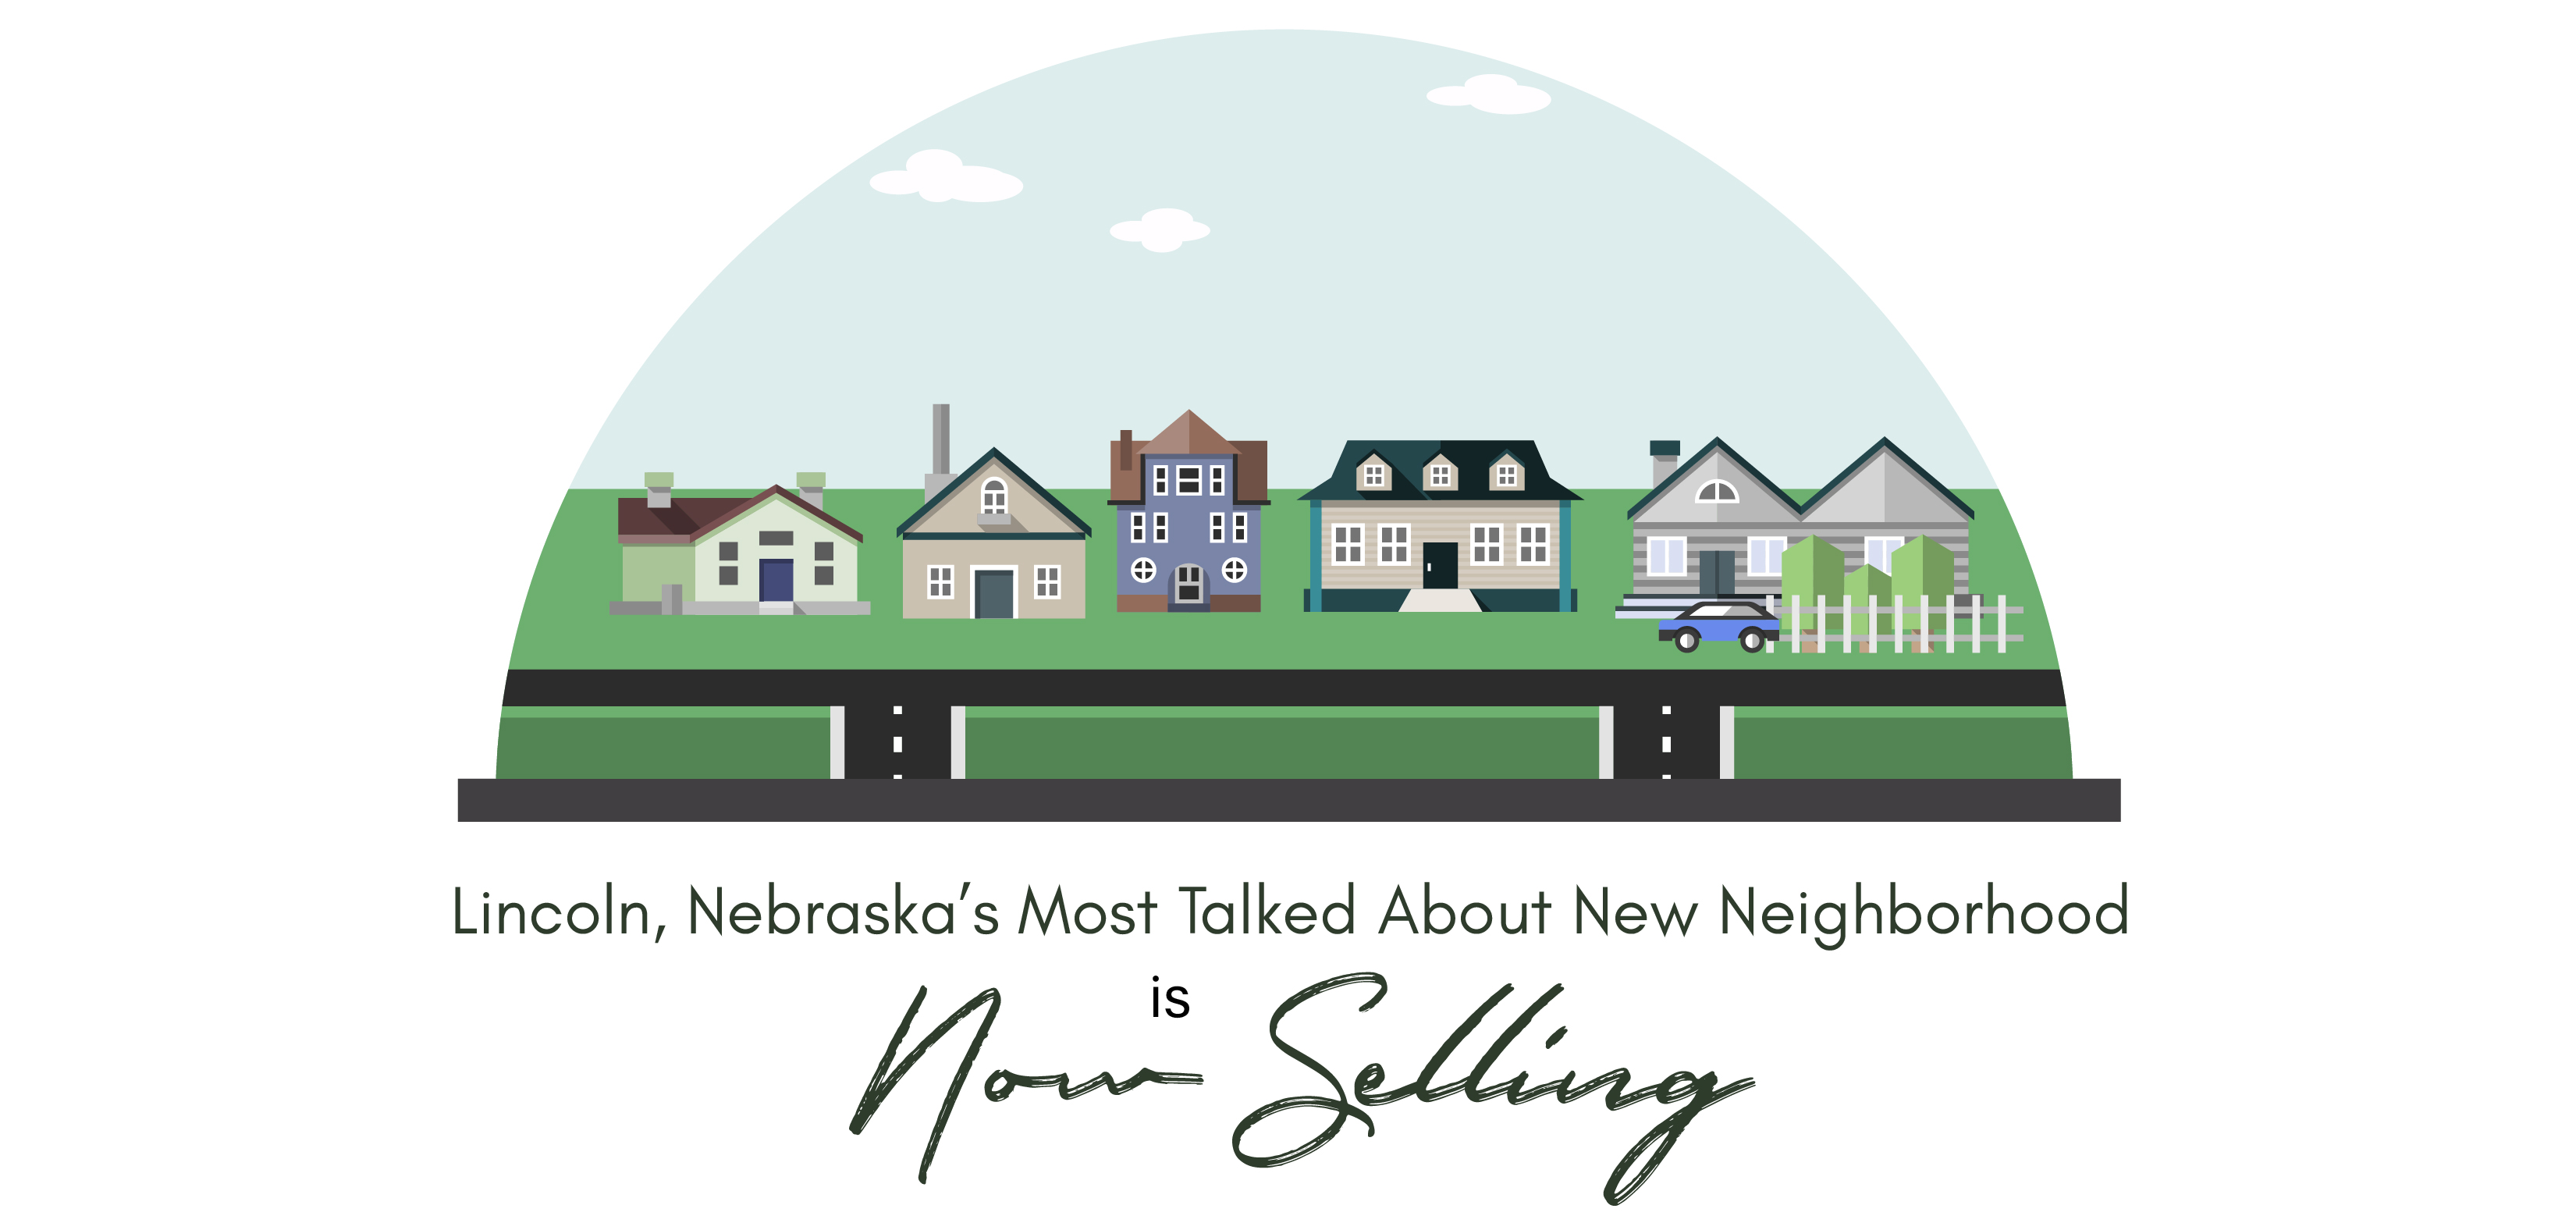 Lincoln And Nebraska Real Estate Homes For Sale Woods Bros Realty